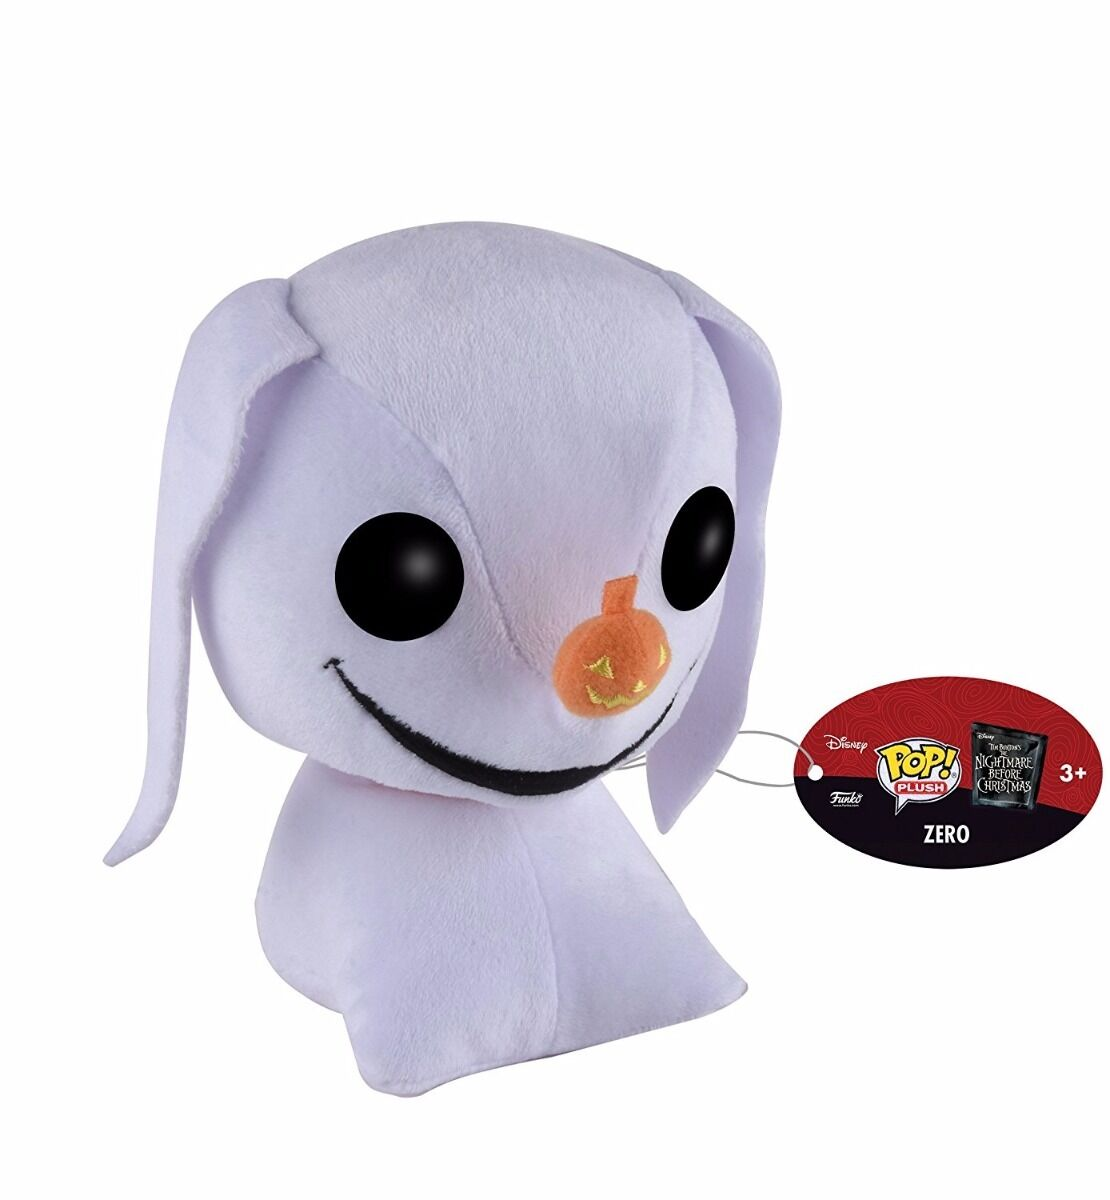 Funko Pop Plush The Nightmare Before Christmas Zero Regular Plush ...